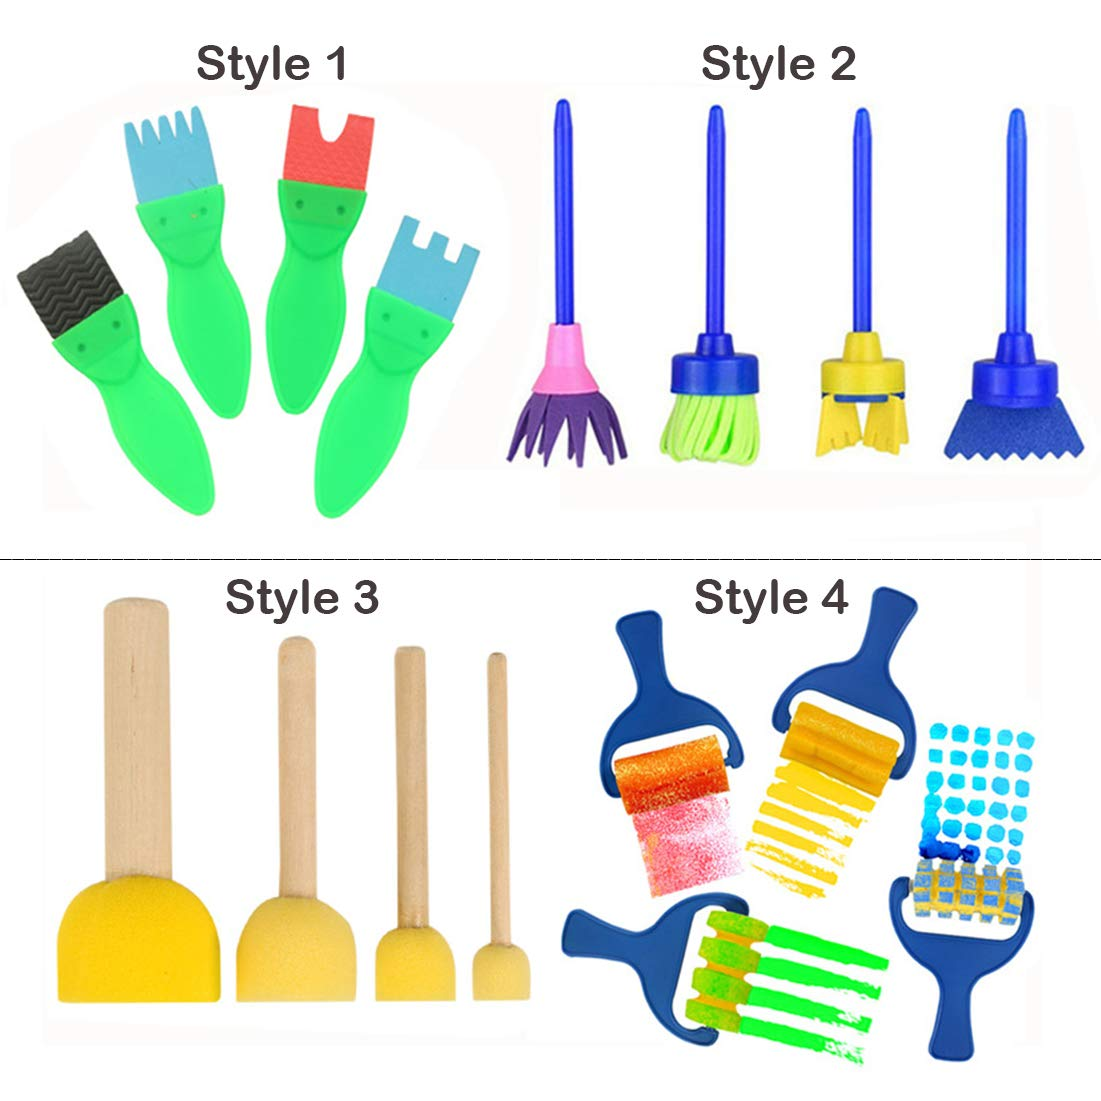 Early Learning Graffiti Paint Brush EVA Sponges Foam Painting Tools Set for Kids Painting Drawing Crafts and DIY 16 PCS Paint Brushes for Kids Artist Paint Texture Brushes